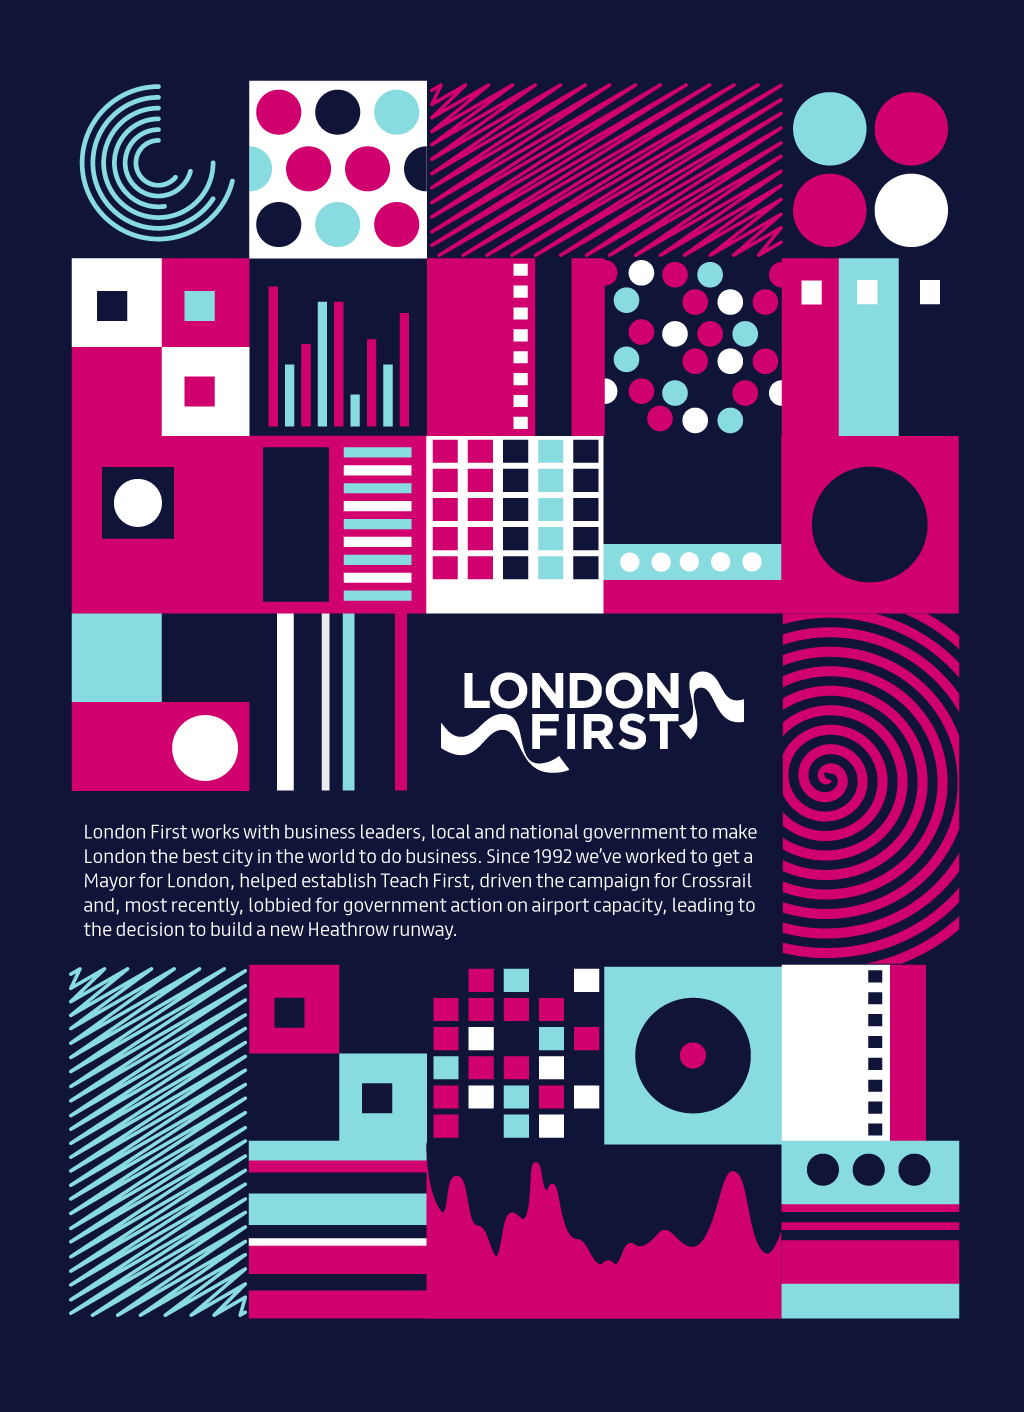 londonfirst-concept-1f.png